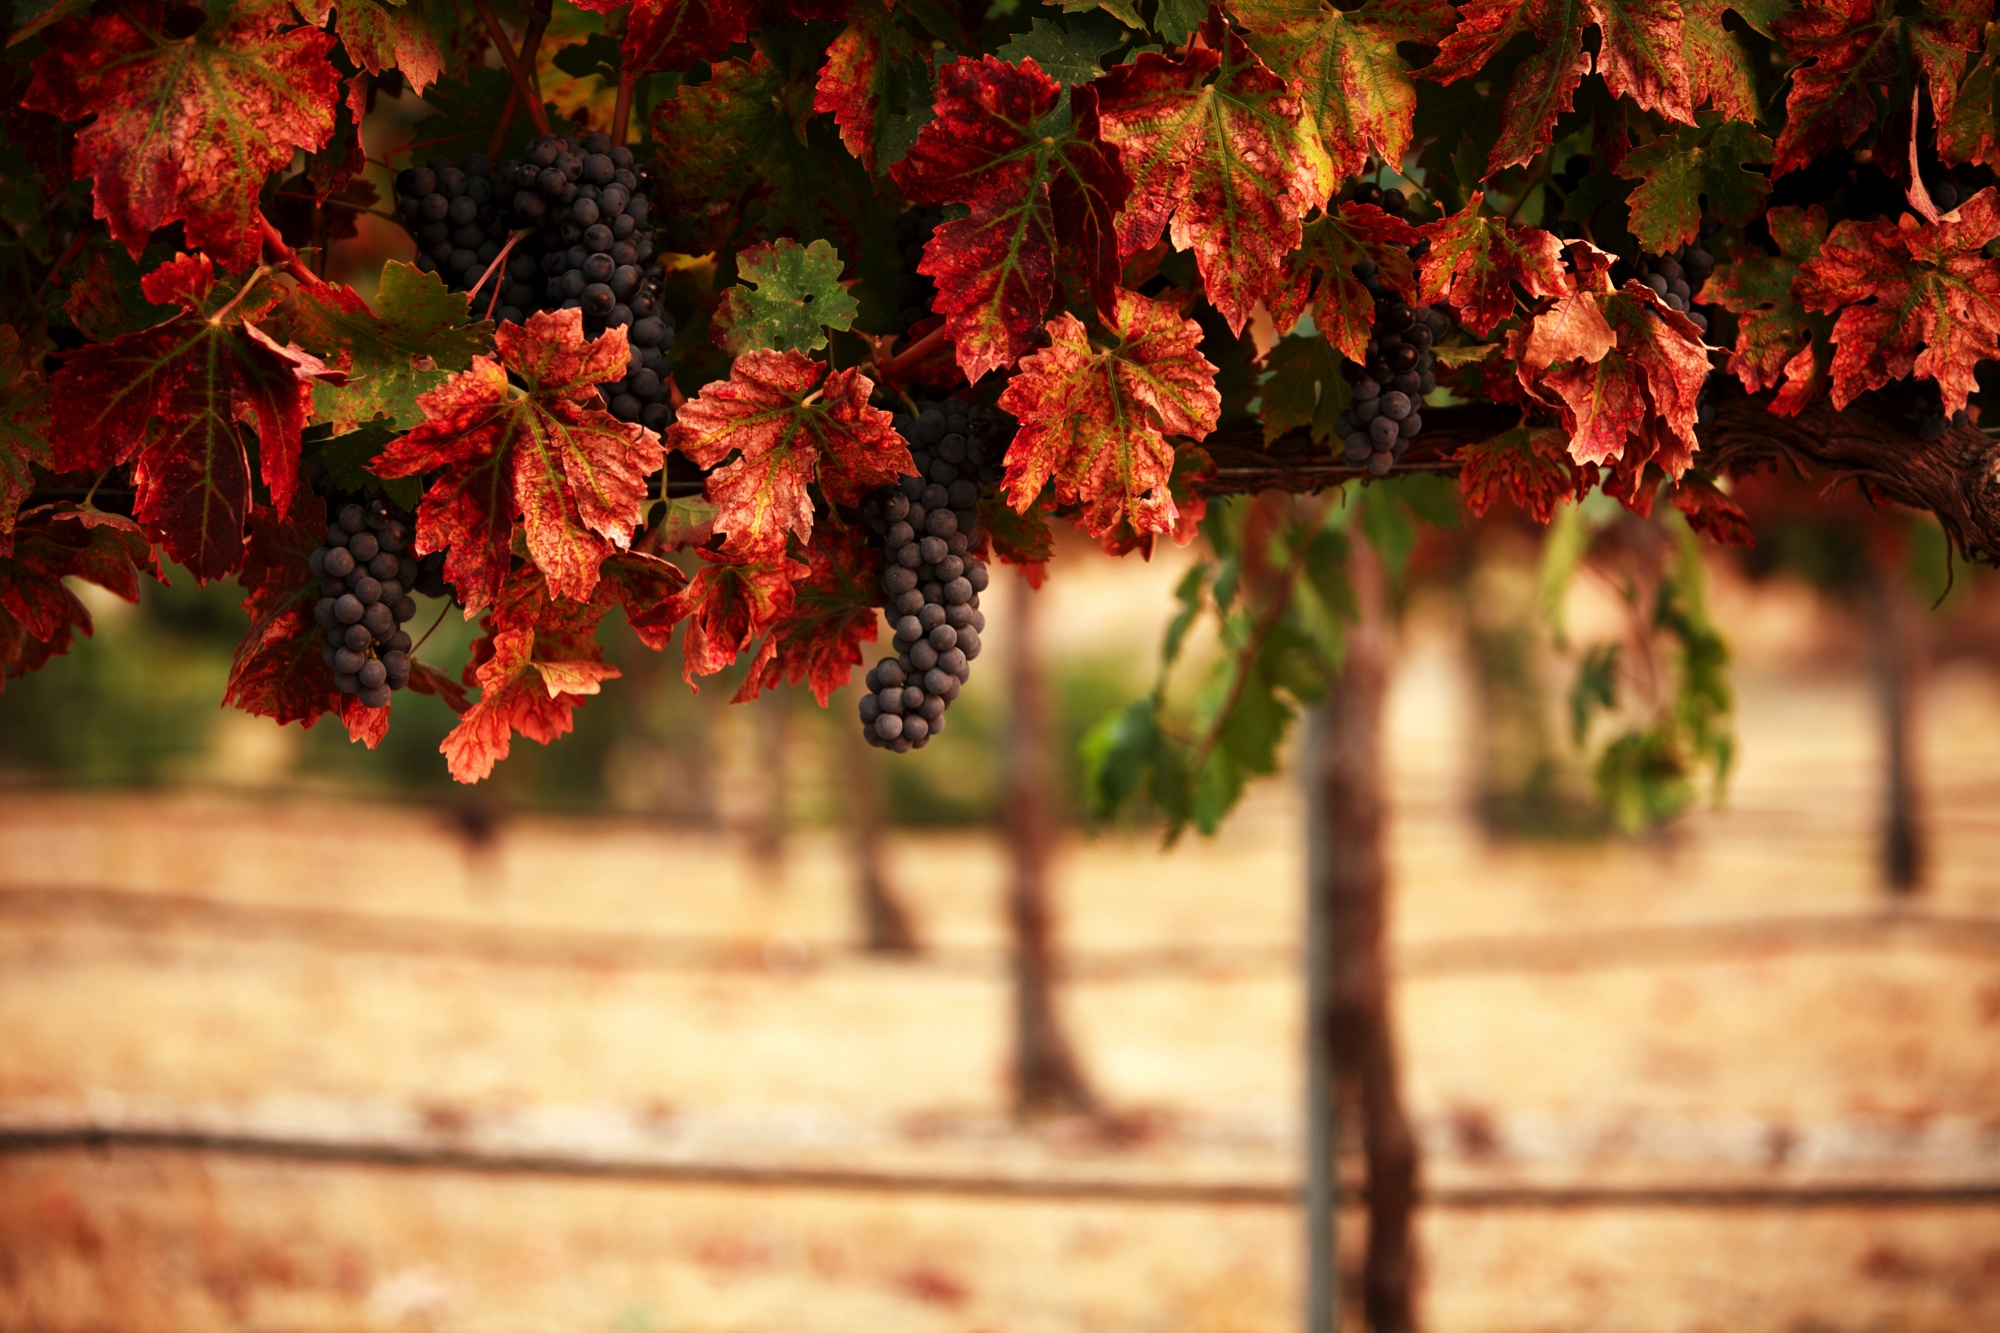 Grapes - 2,000 px wide at full quality 880KB